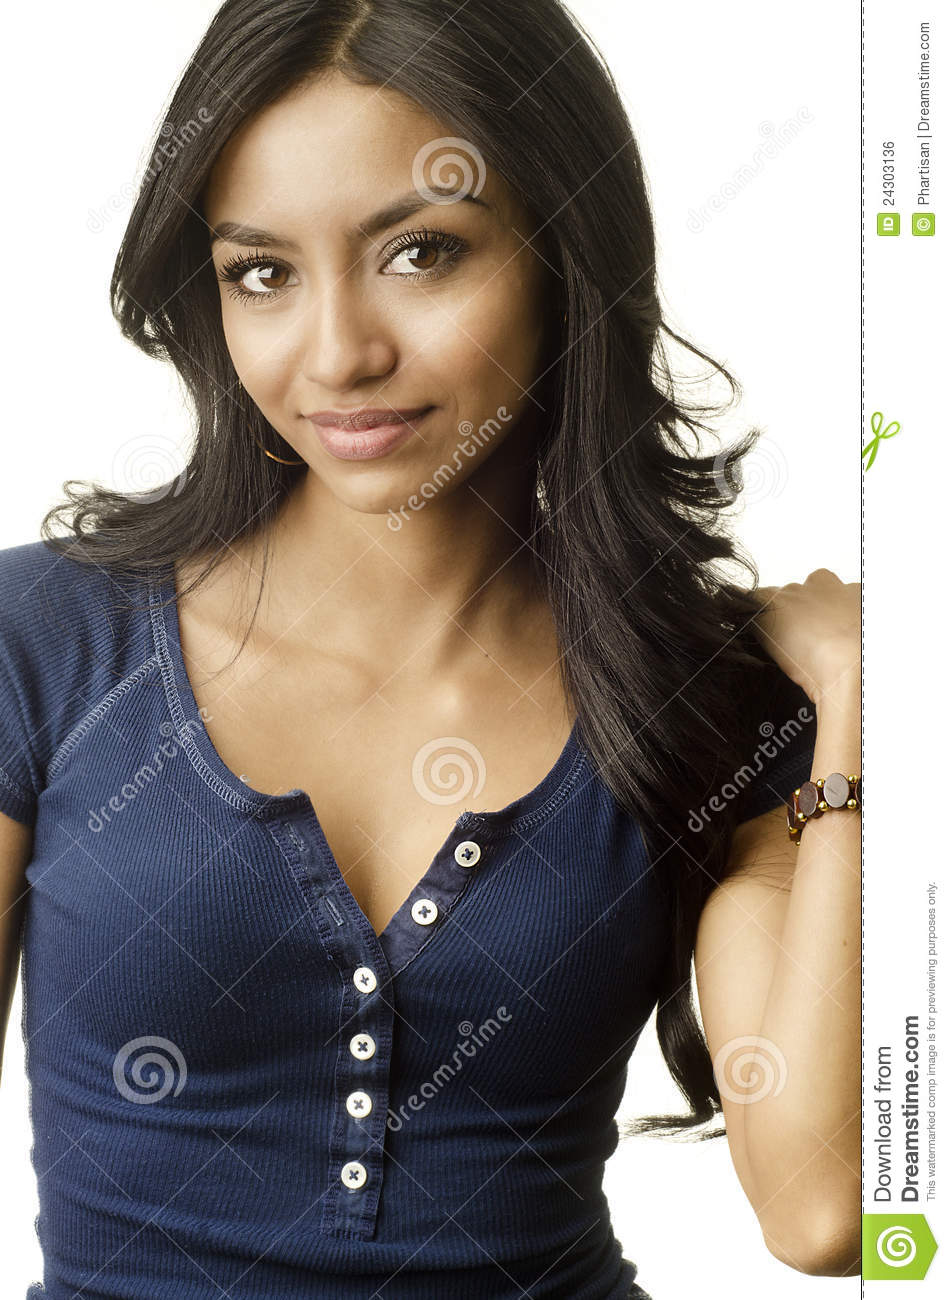 Beautiful Young Exotic Womans Facr Royalty Free Stock Image - Image: 24303136